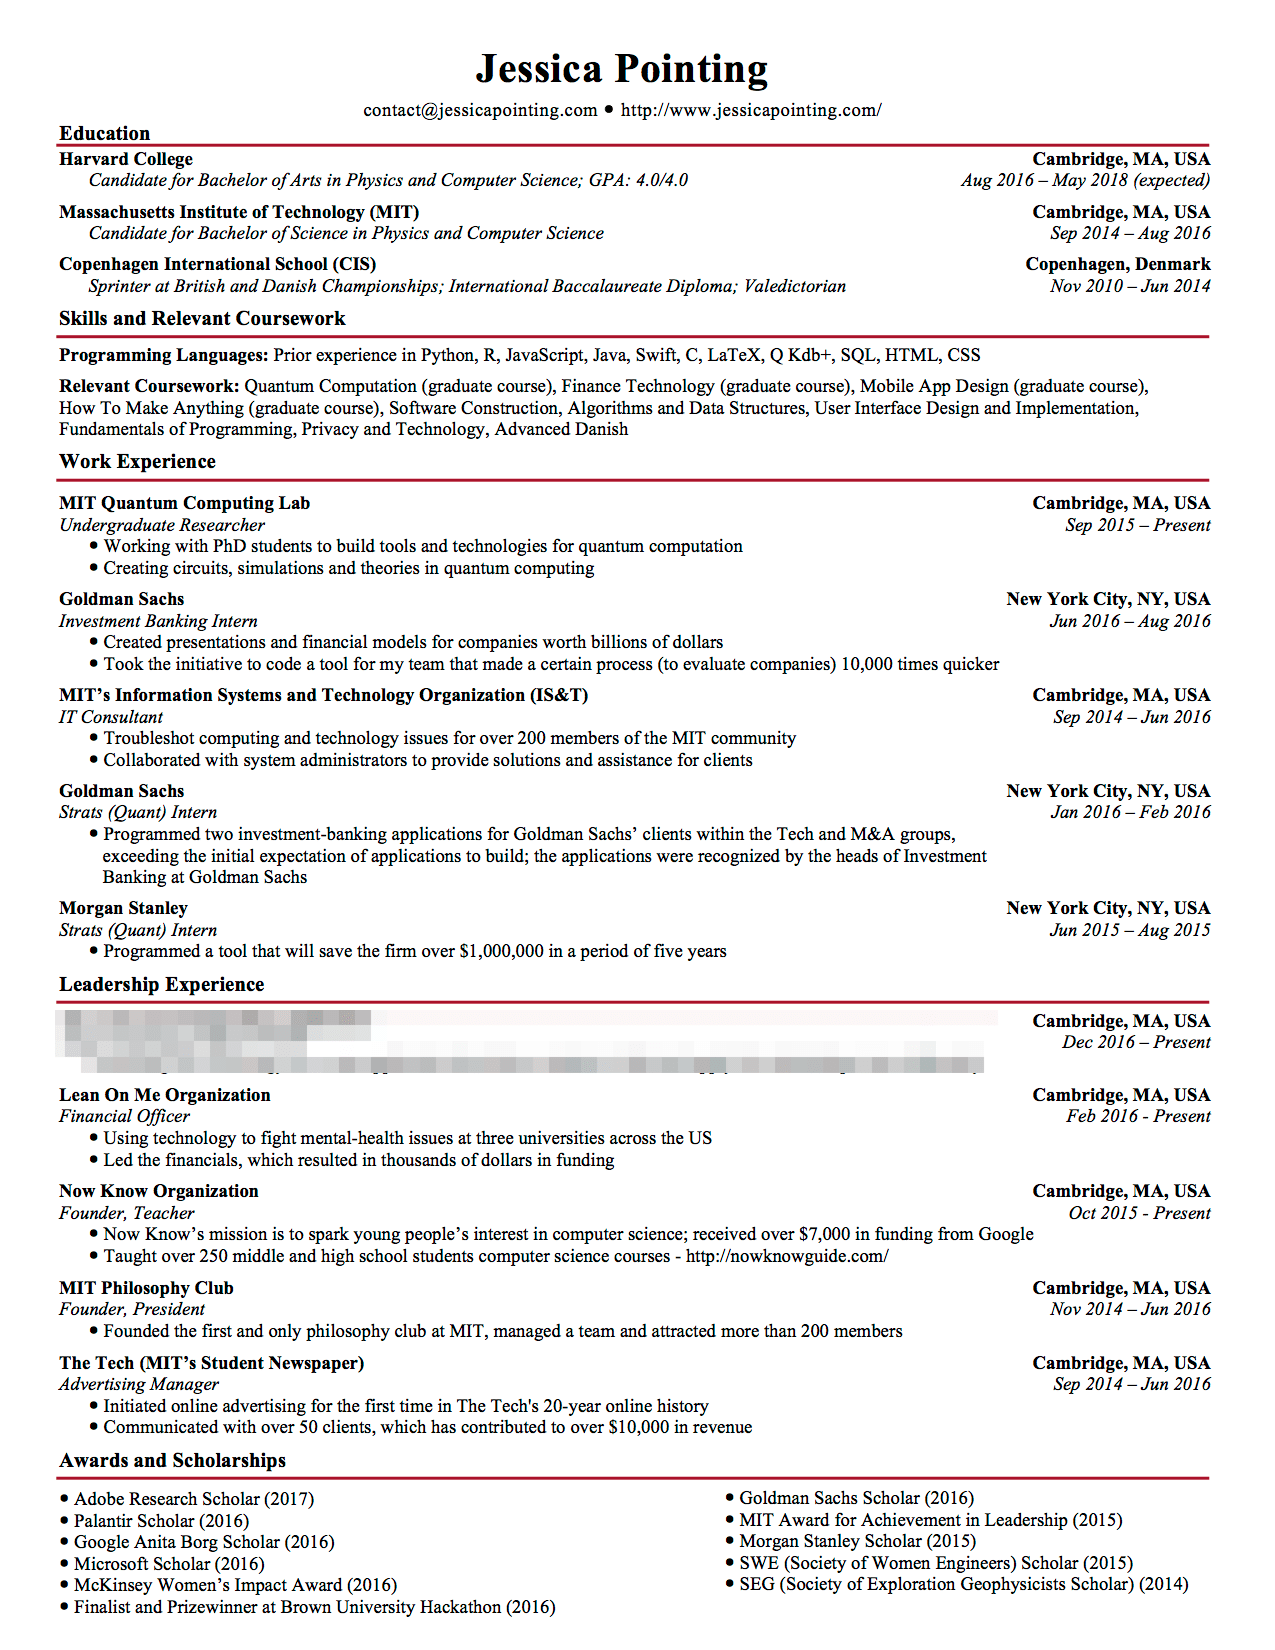 resume for goldman sachs internship